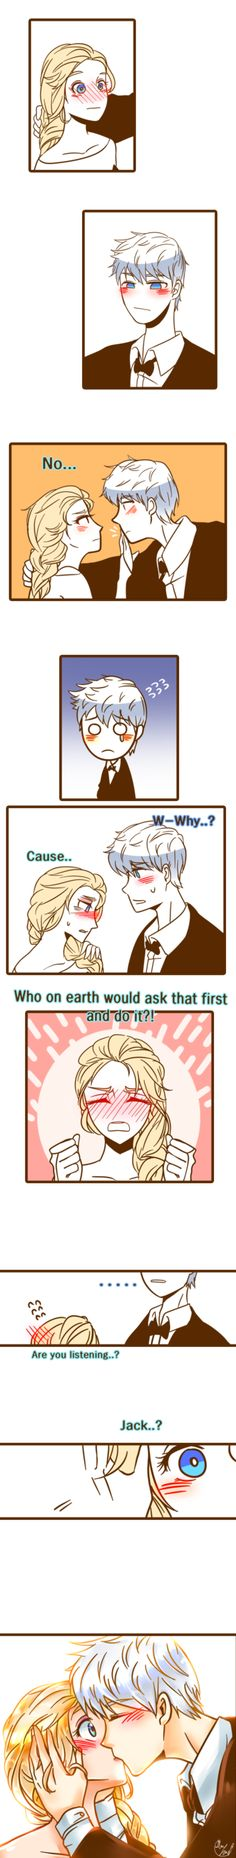 [Triwizard] Ball-Jelsa (3) by Lime-Hael on DeviantArt